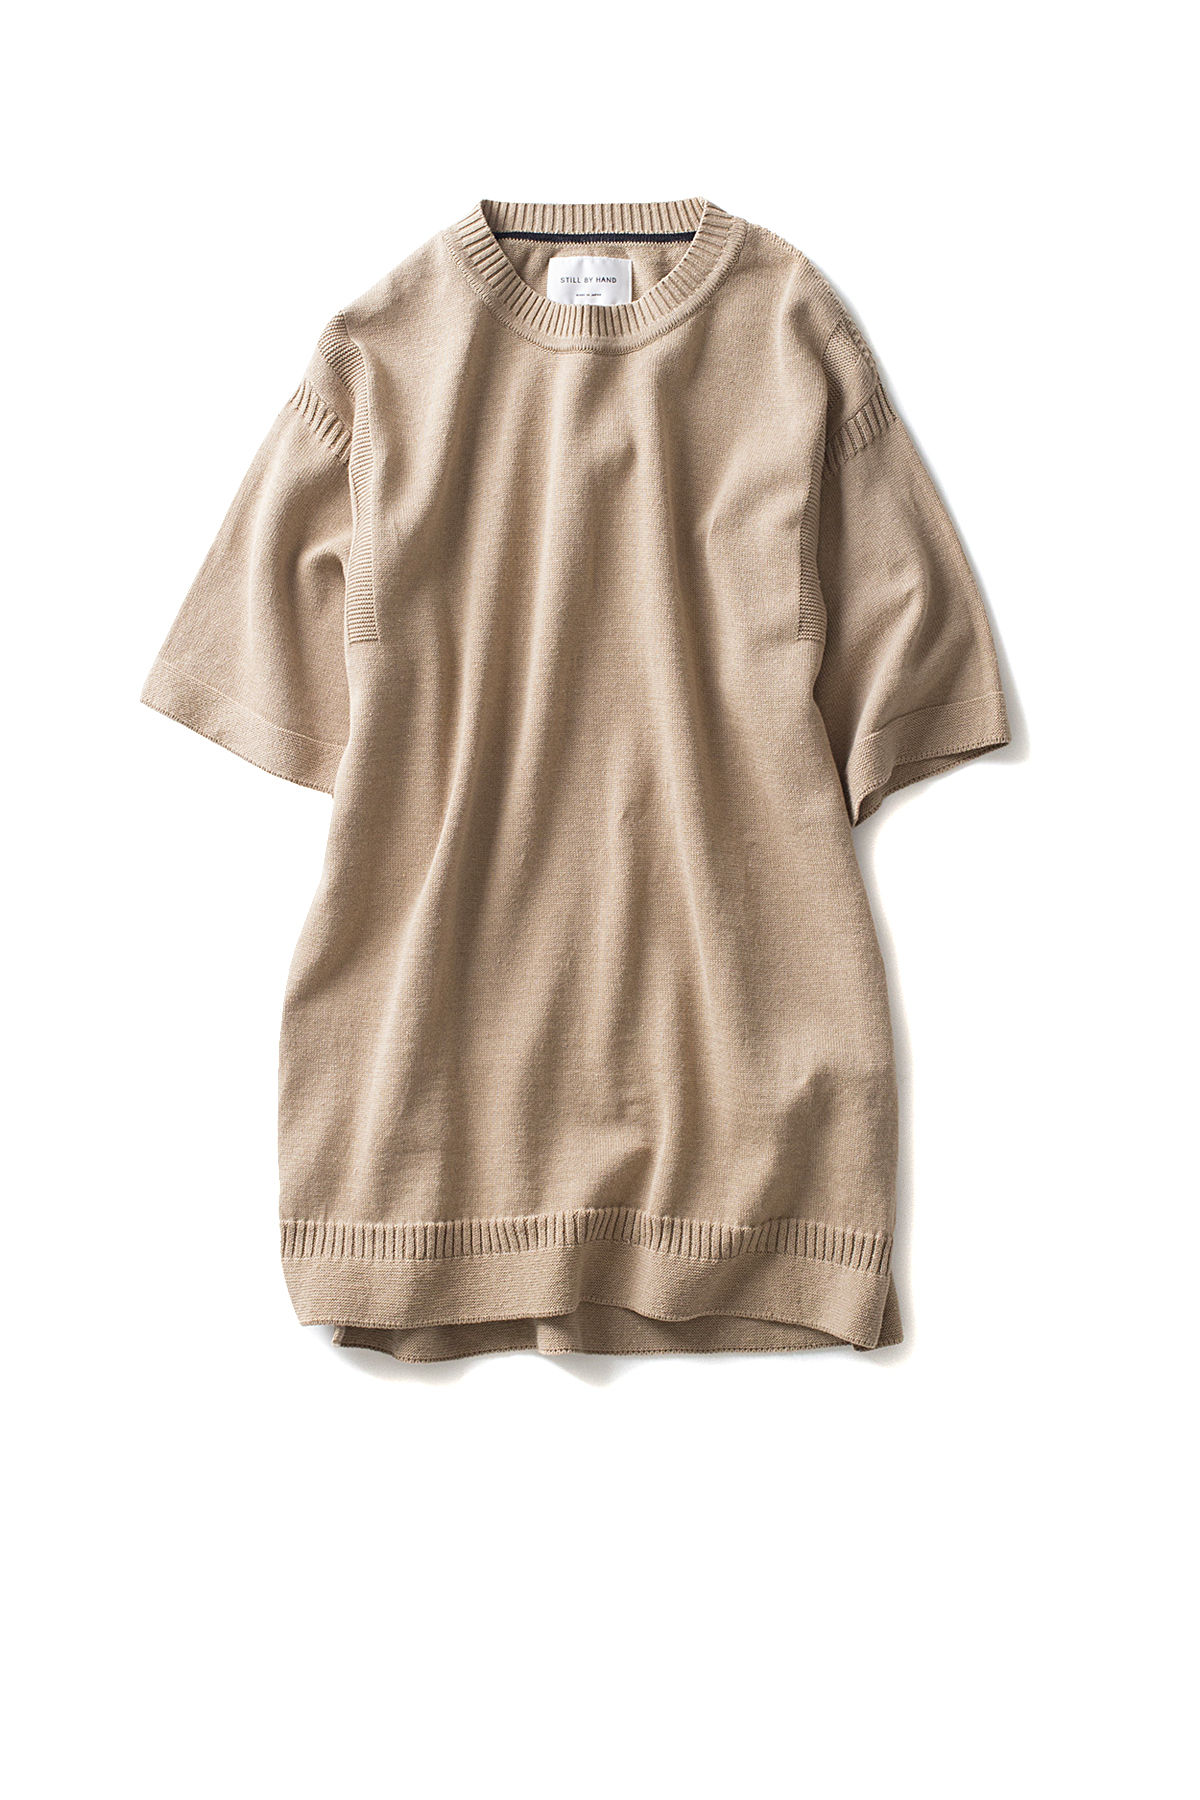 Still By Hand : Half Sleeve Knit (Beige)